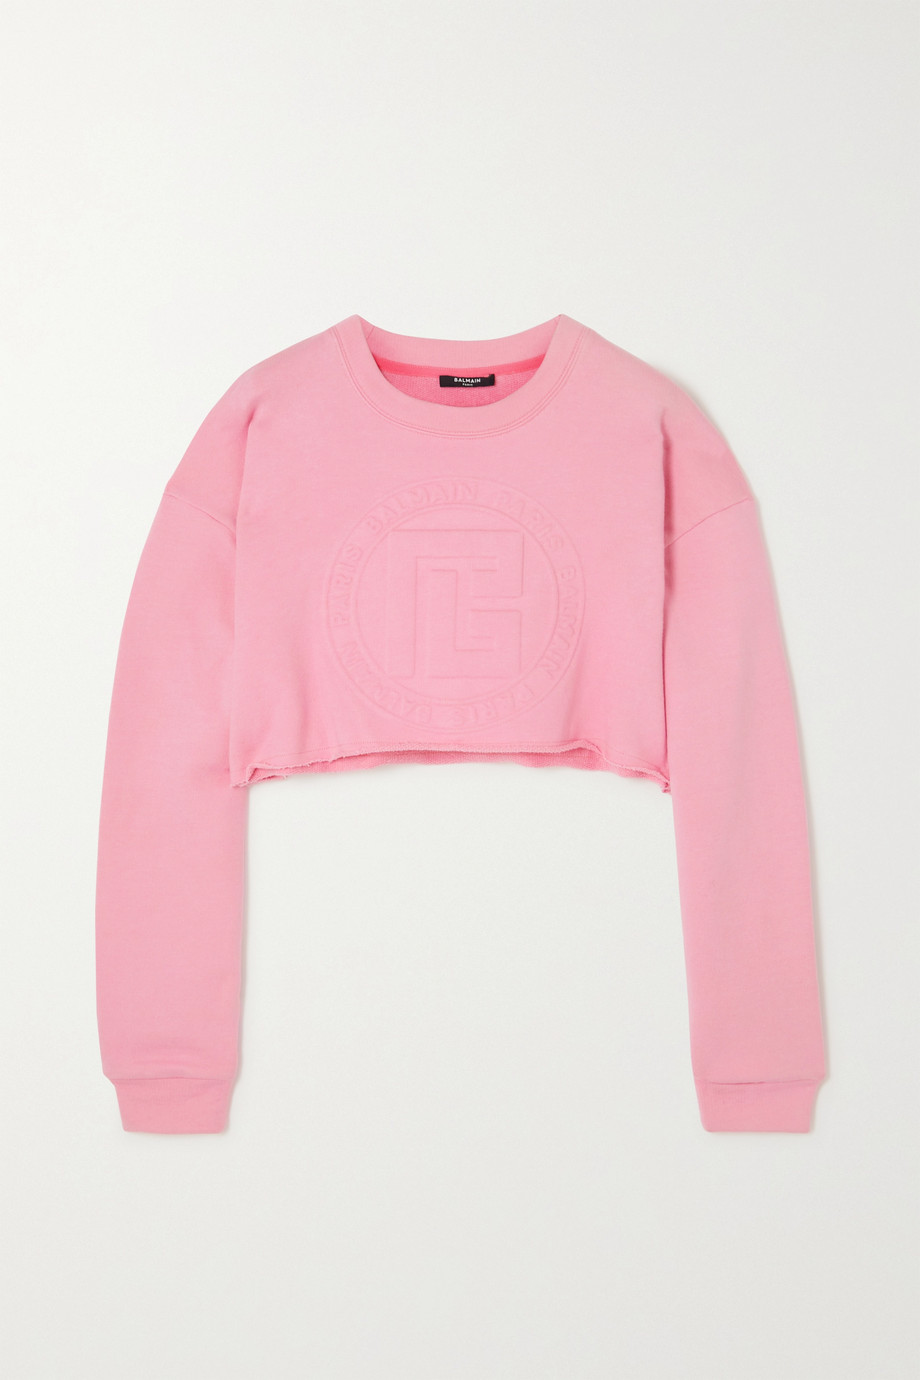 BALMAIN Cropped embossed cotton and cashmere-blend sweatshirt